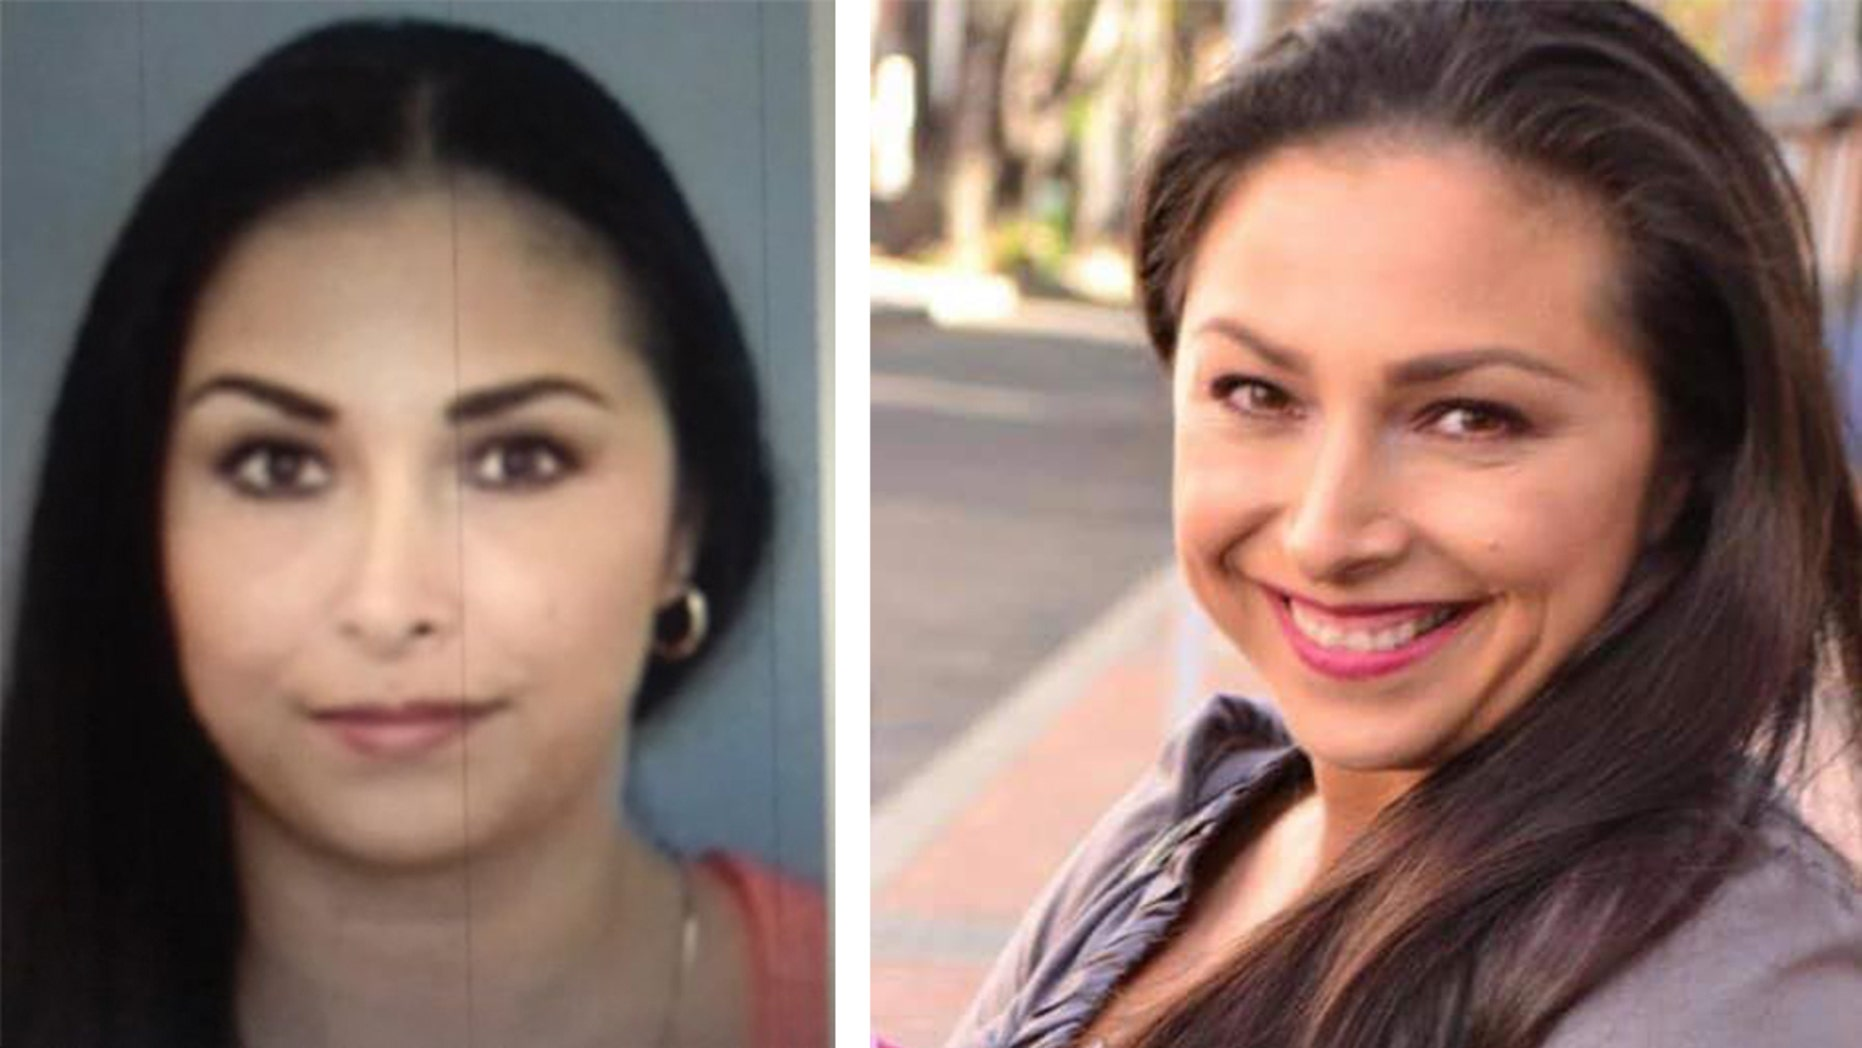 Diana Alejandra Keel, 38, was final seen by her father on Friday, a sheriff's bureau said.